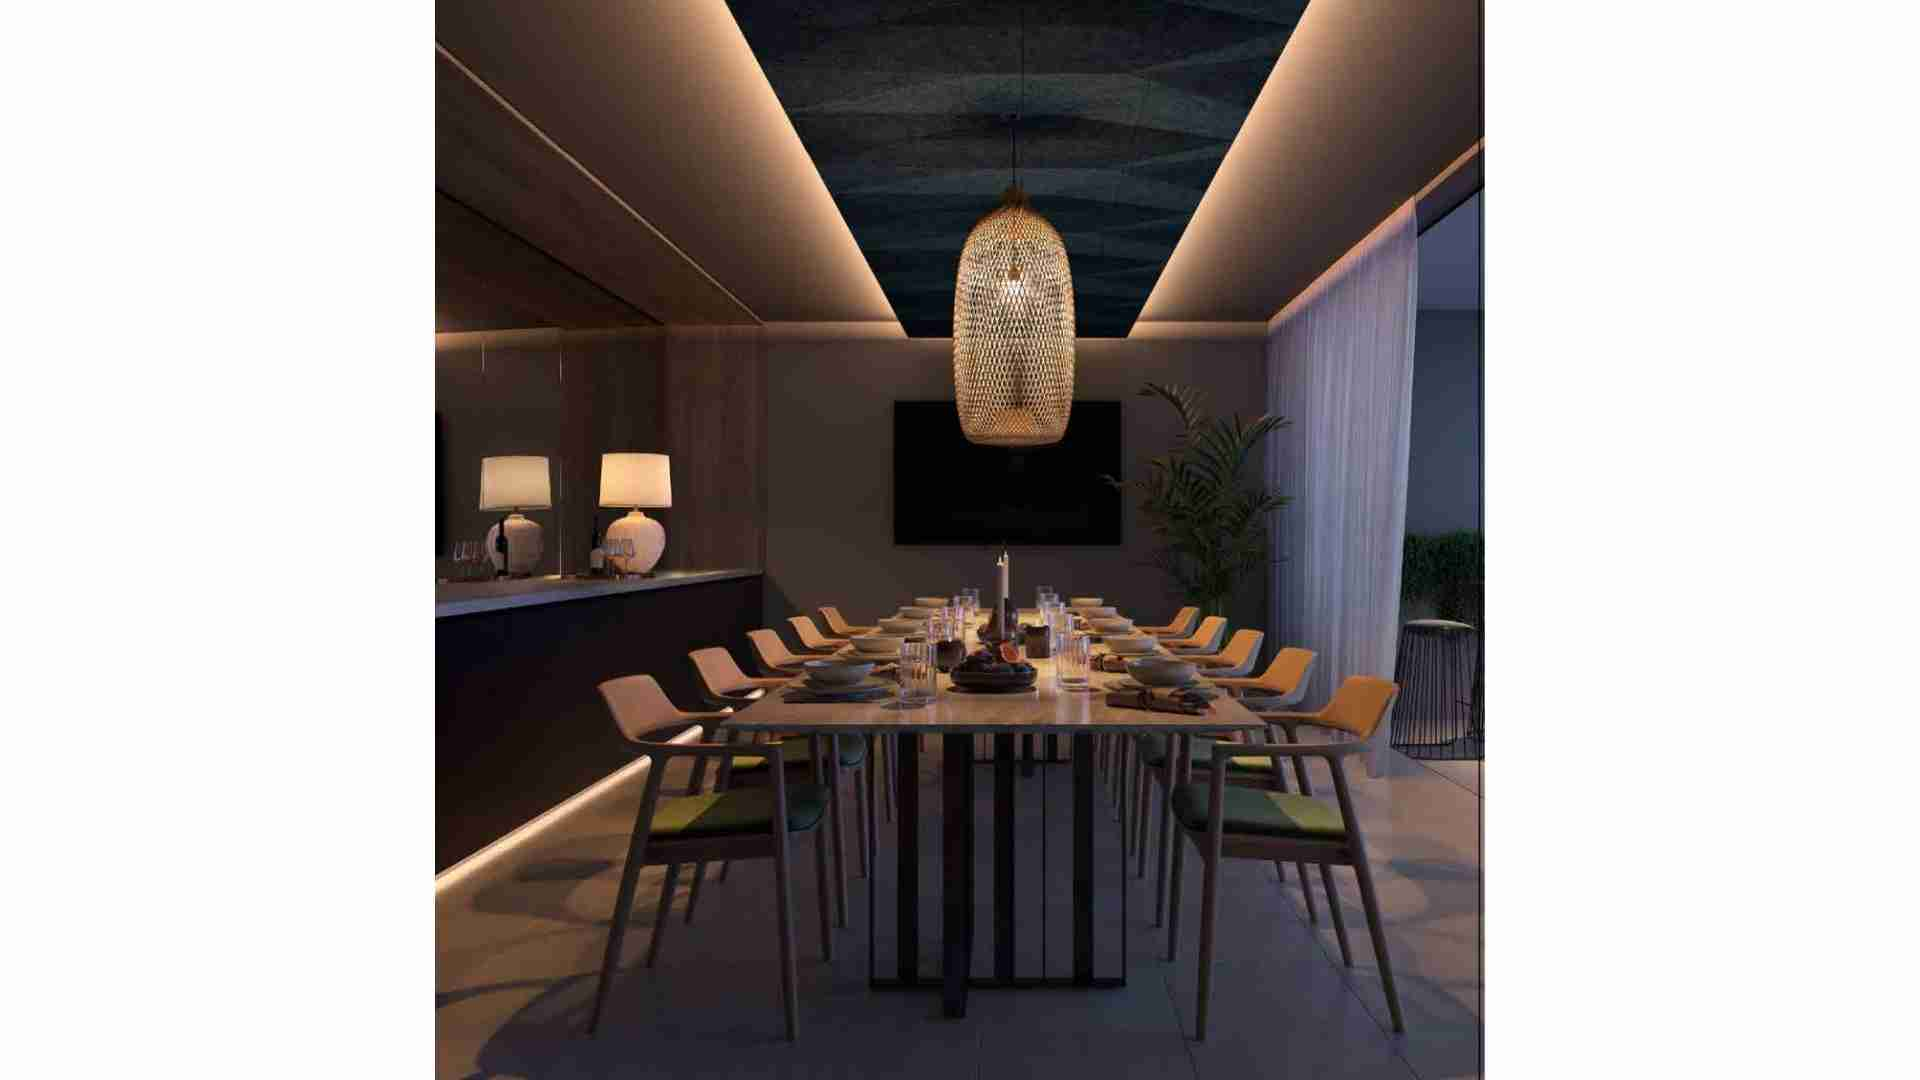 long rectangle dining table with 10 chairs, mirrored wall